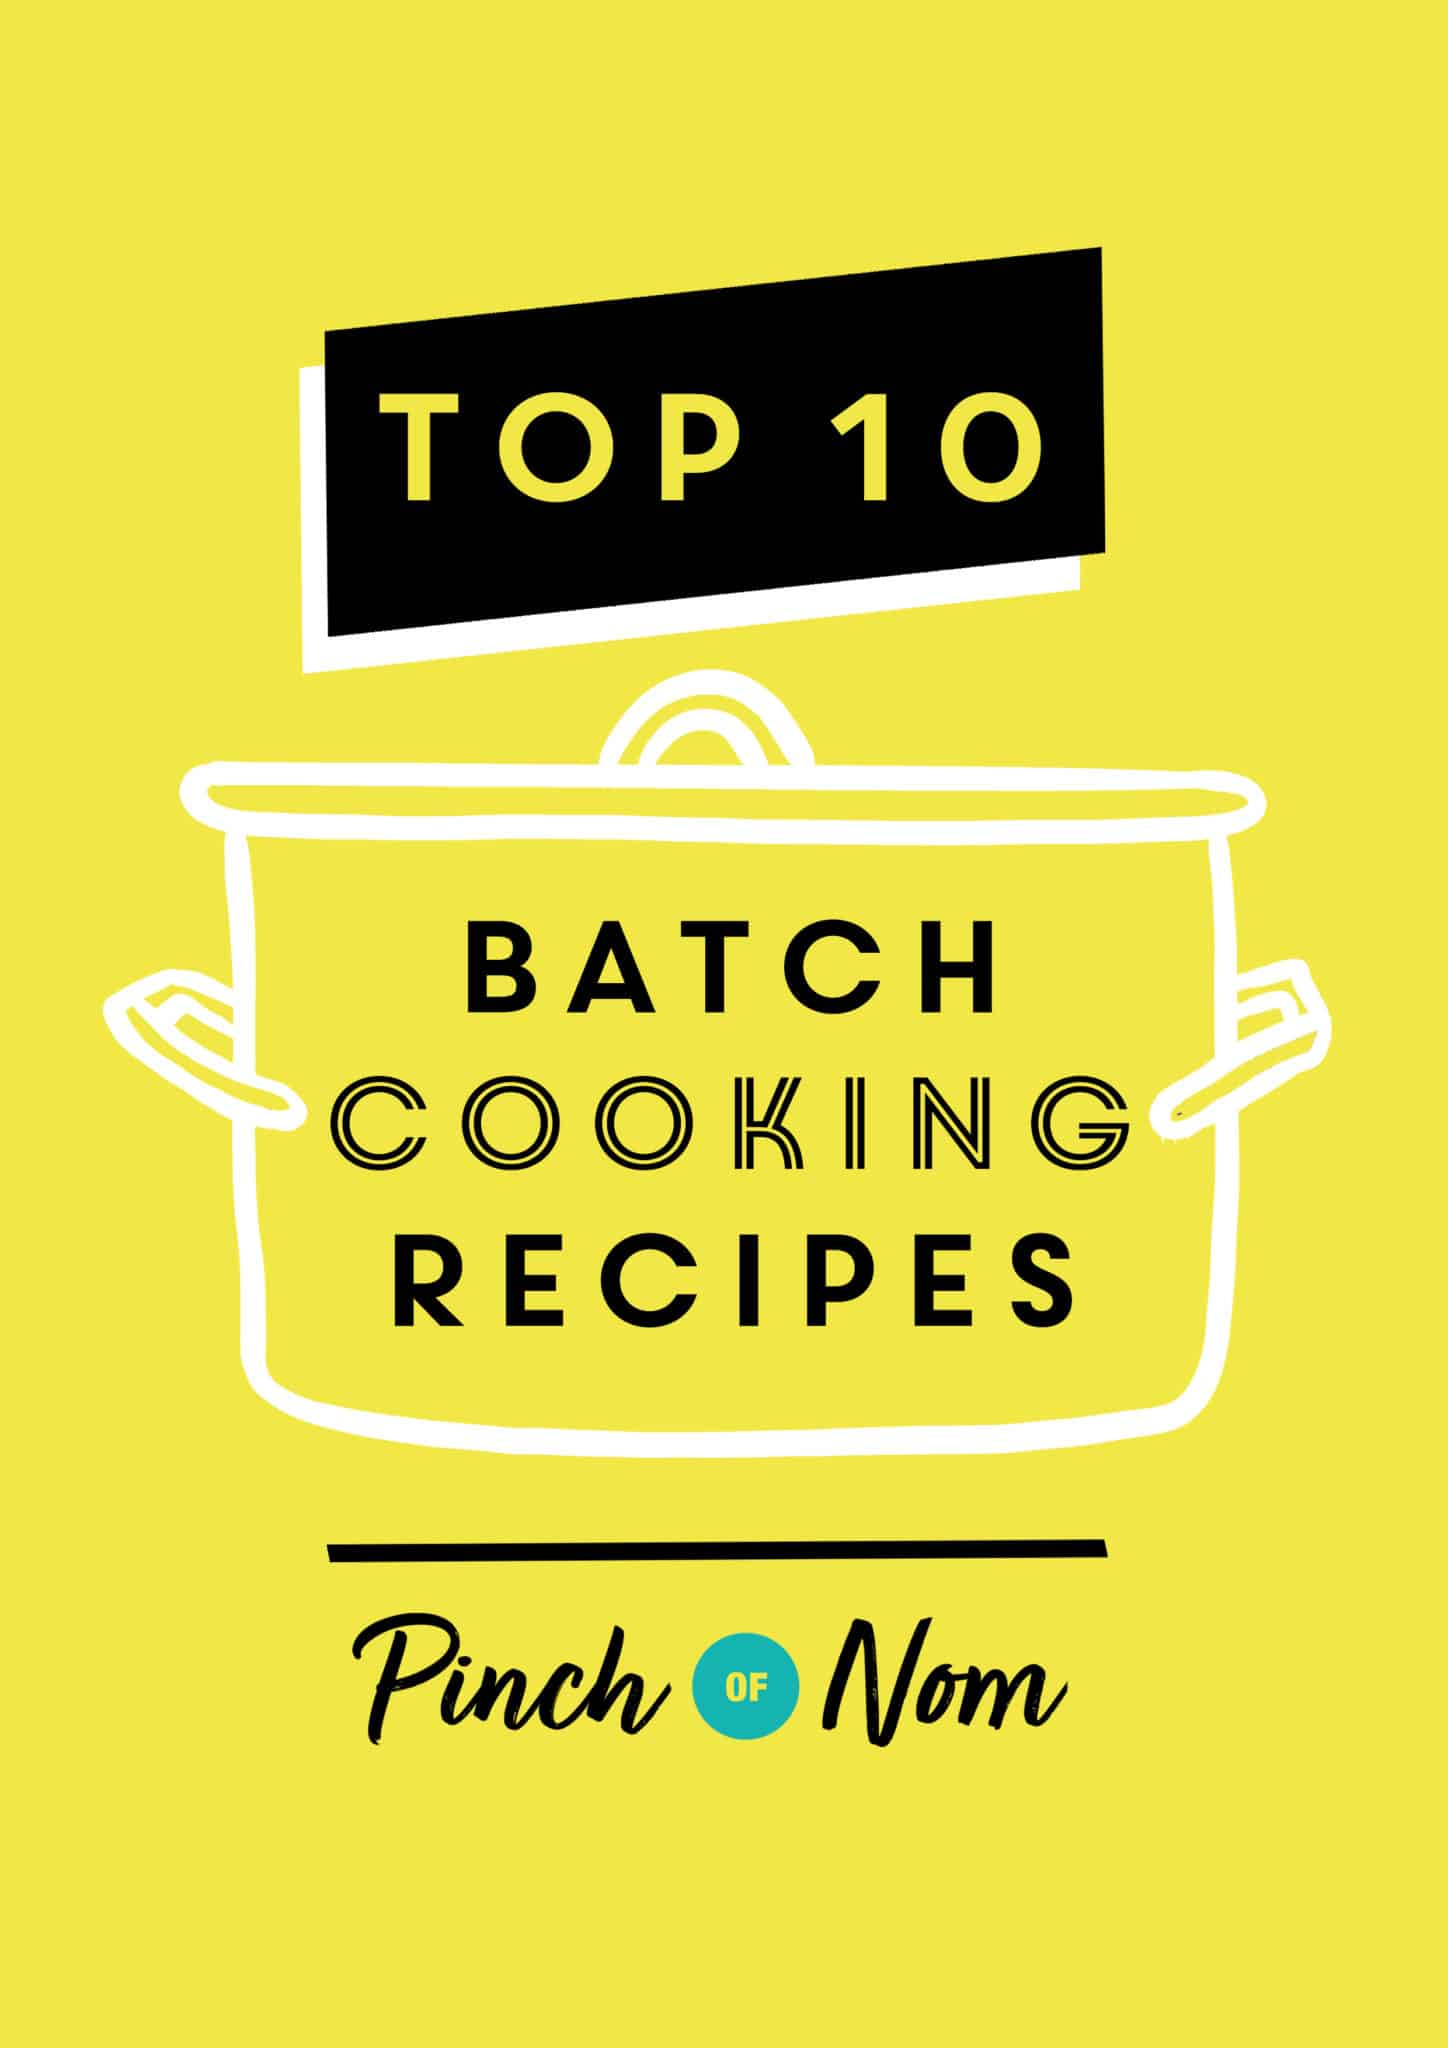 Top 10 Batch Cooking Recipes | Pinch of Nom Slimming Recipes